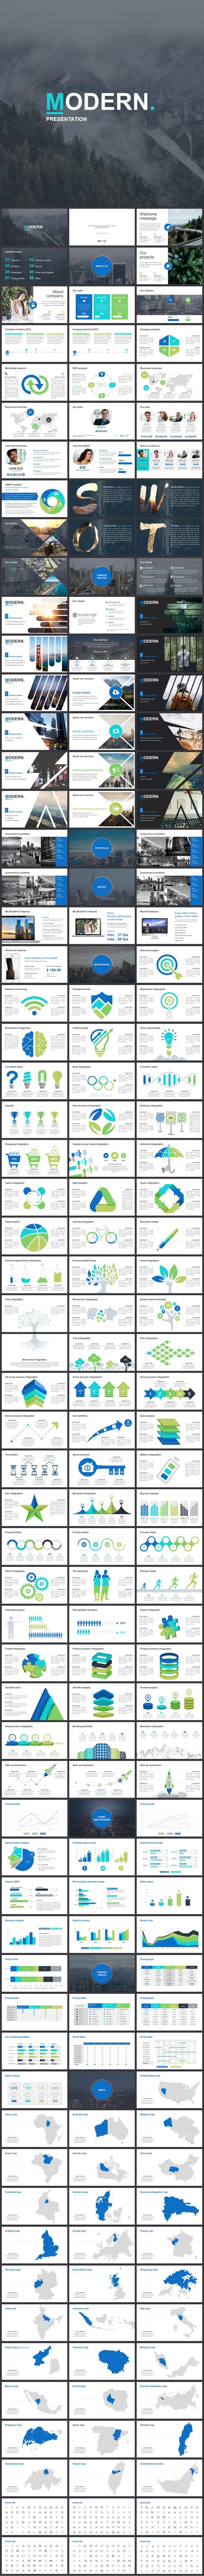 Modern #Powerpoint Template - #Business PowerPoint #Templates Download here: https://graphicriver.net/item/modern-powerpoint-template/19268244?ref=alena994